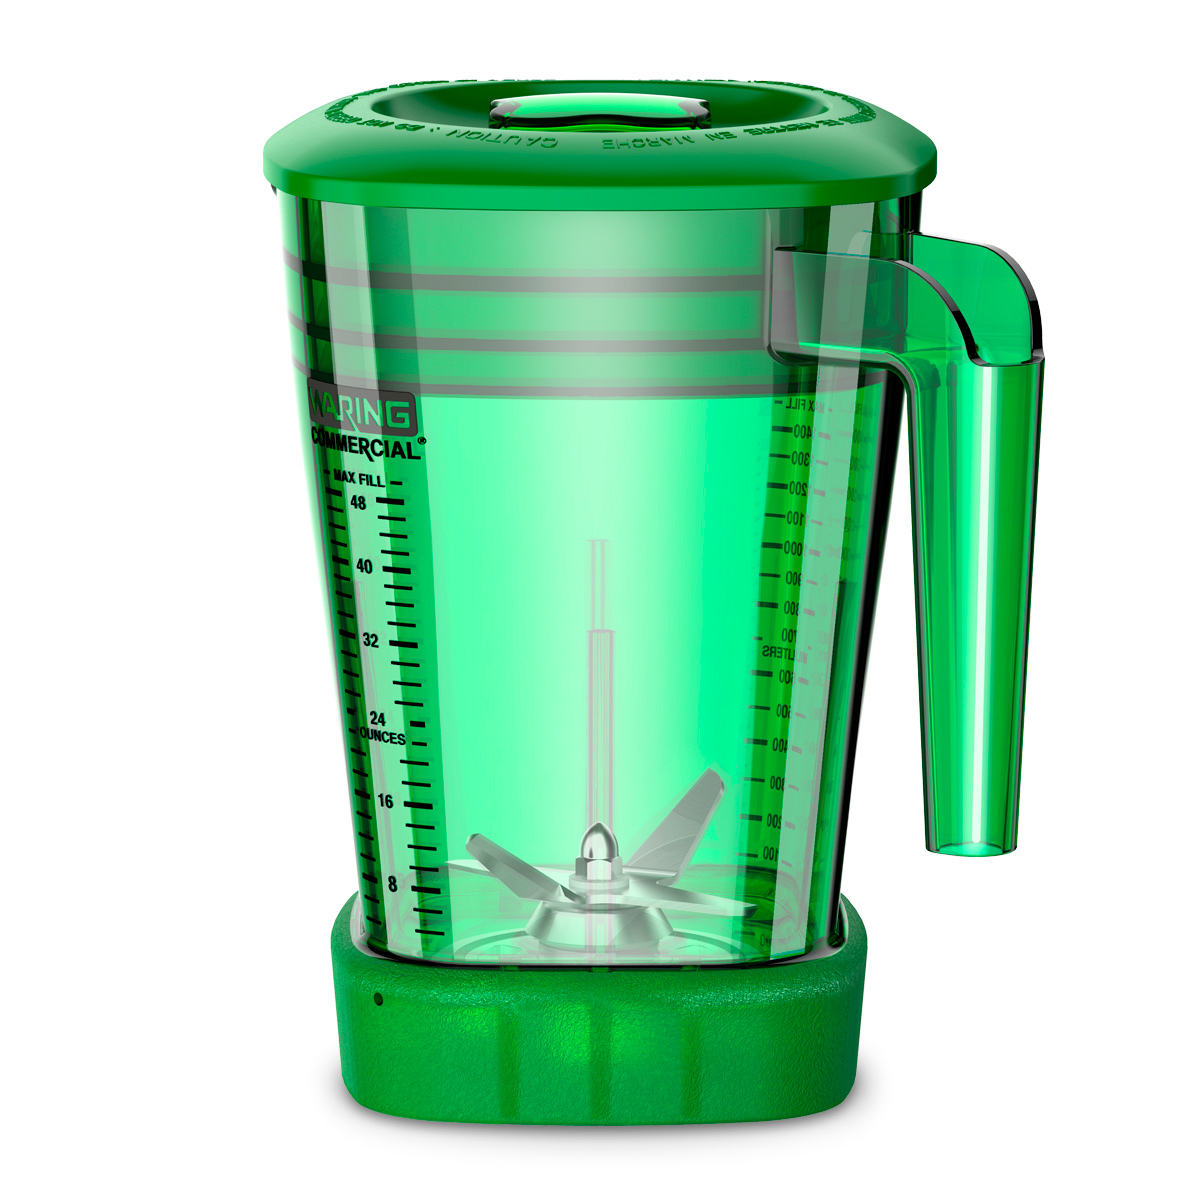 Waring CAC93X-12 blender container